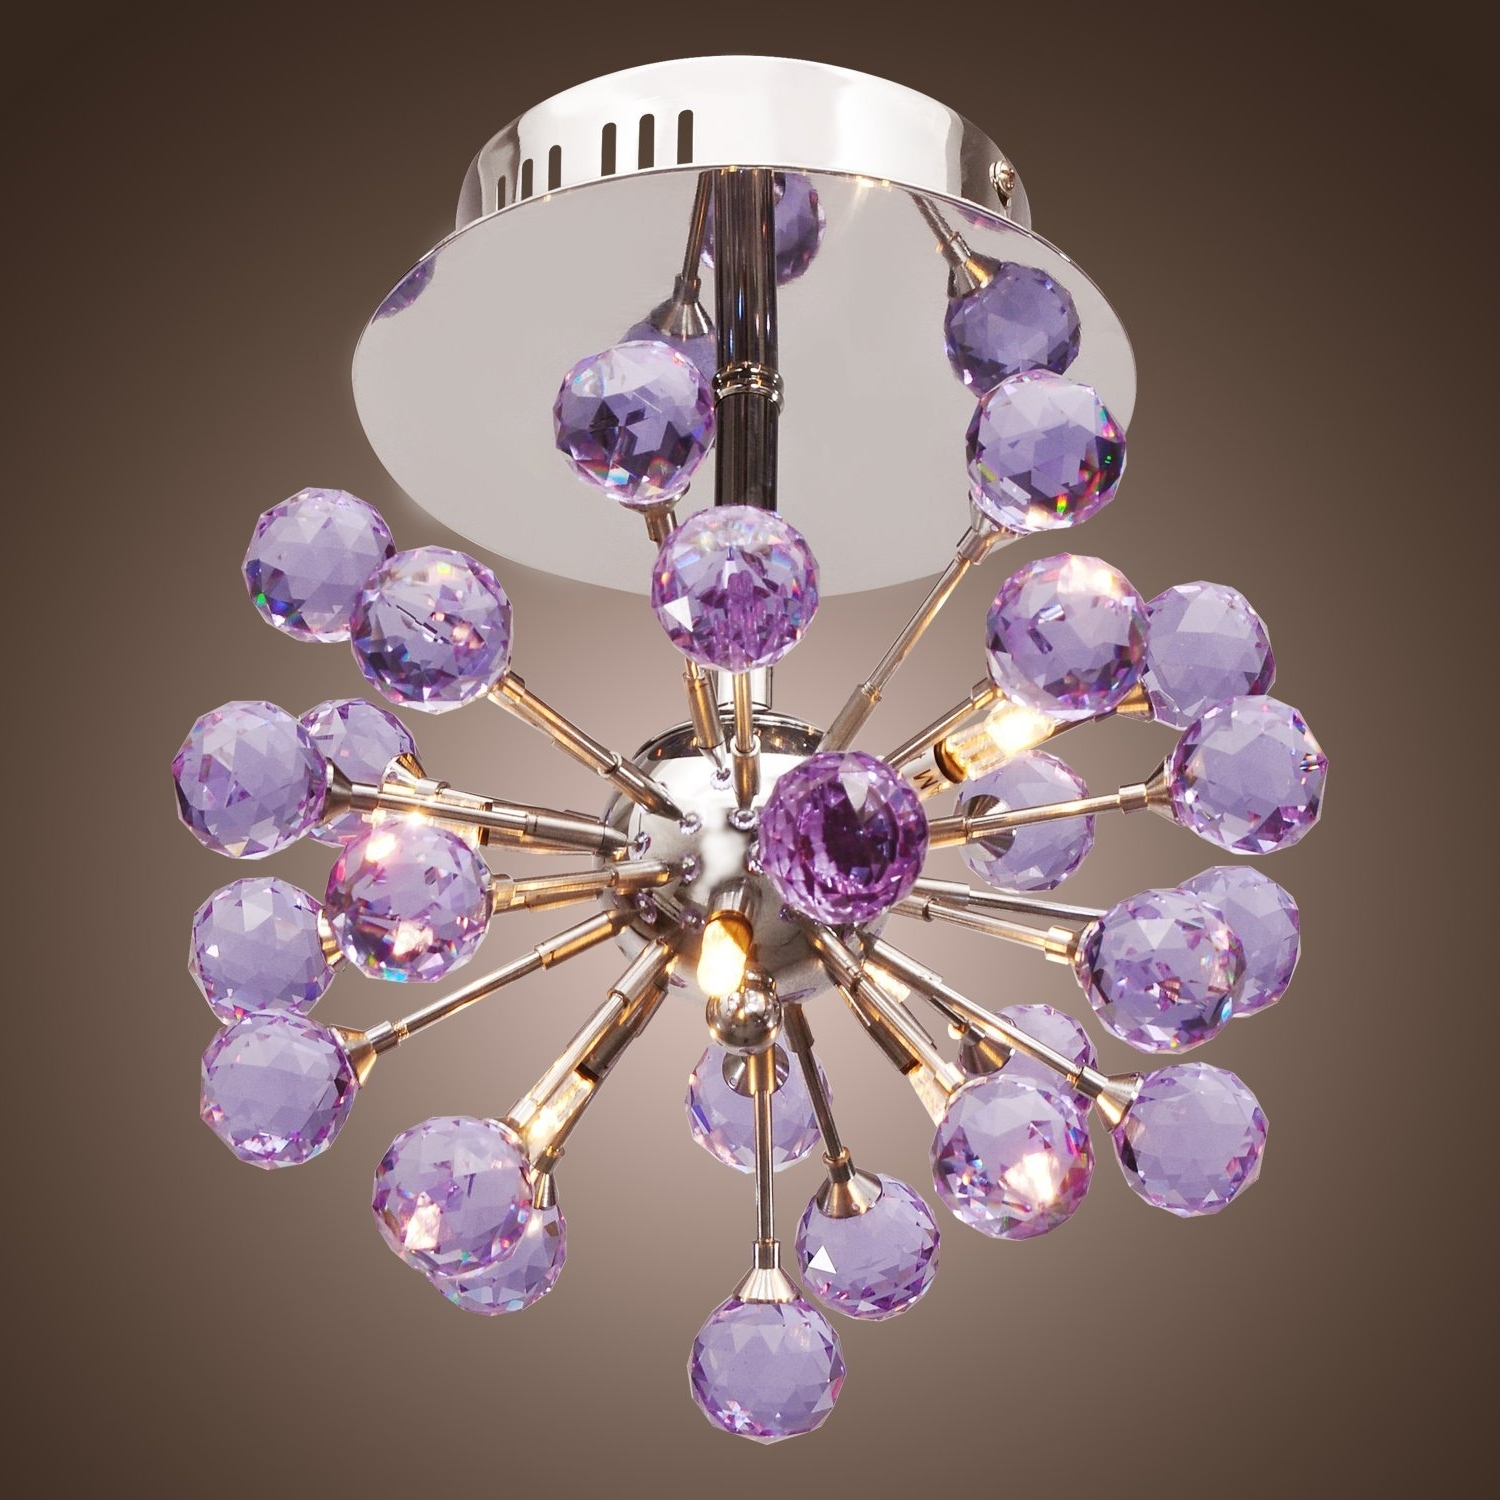 Purple Crystal Chandelier Lights With Regard To Favorite Lightinthebox 6 Light Floral Shape K9 Crystal Ceiling Light Purple (View 12 of 15)